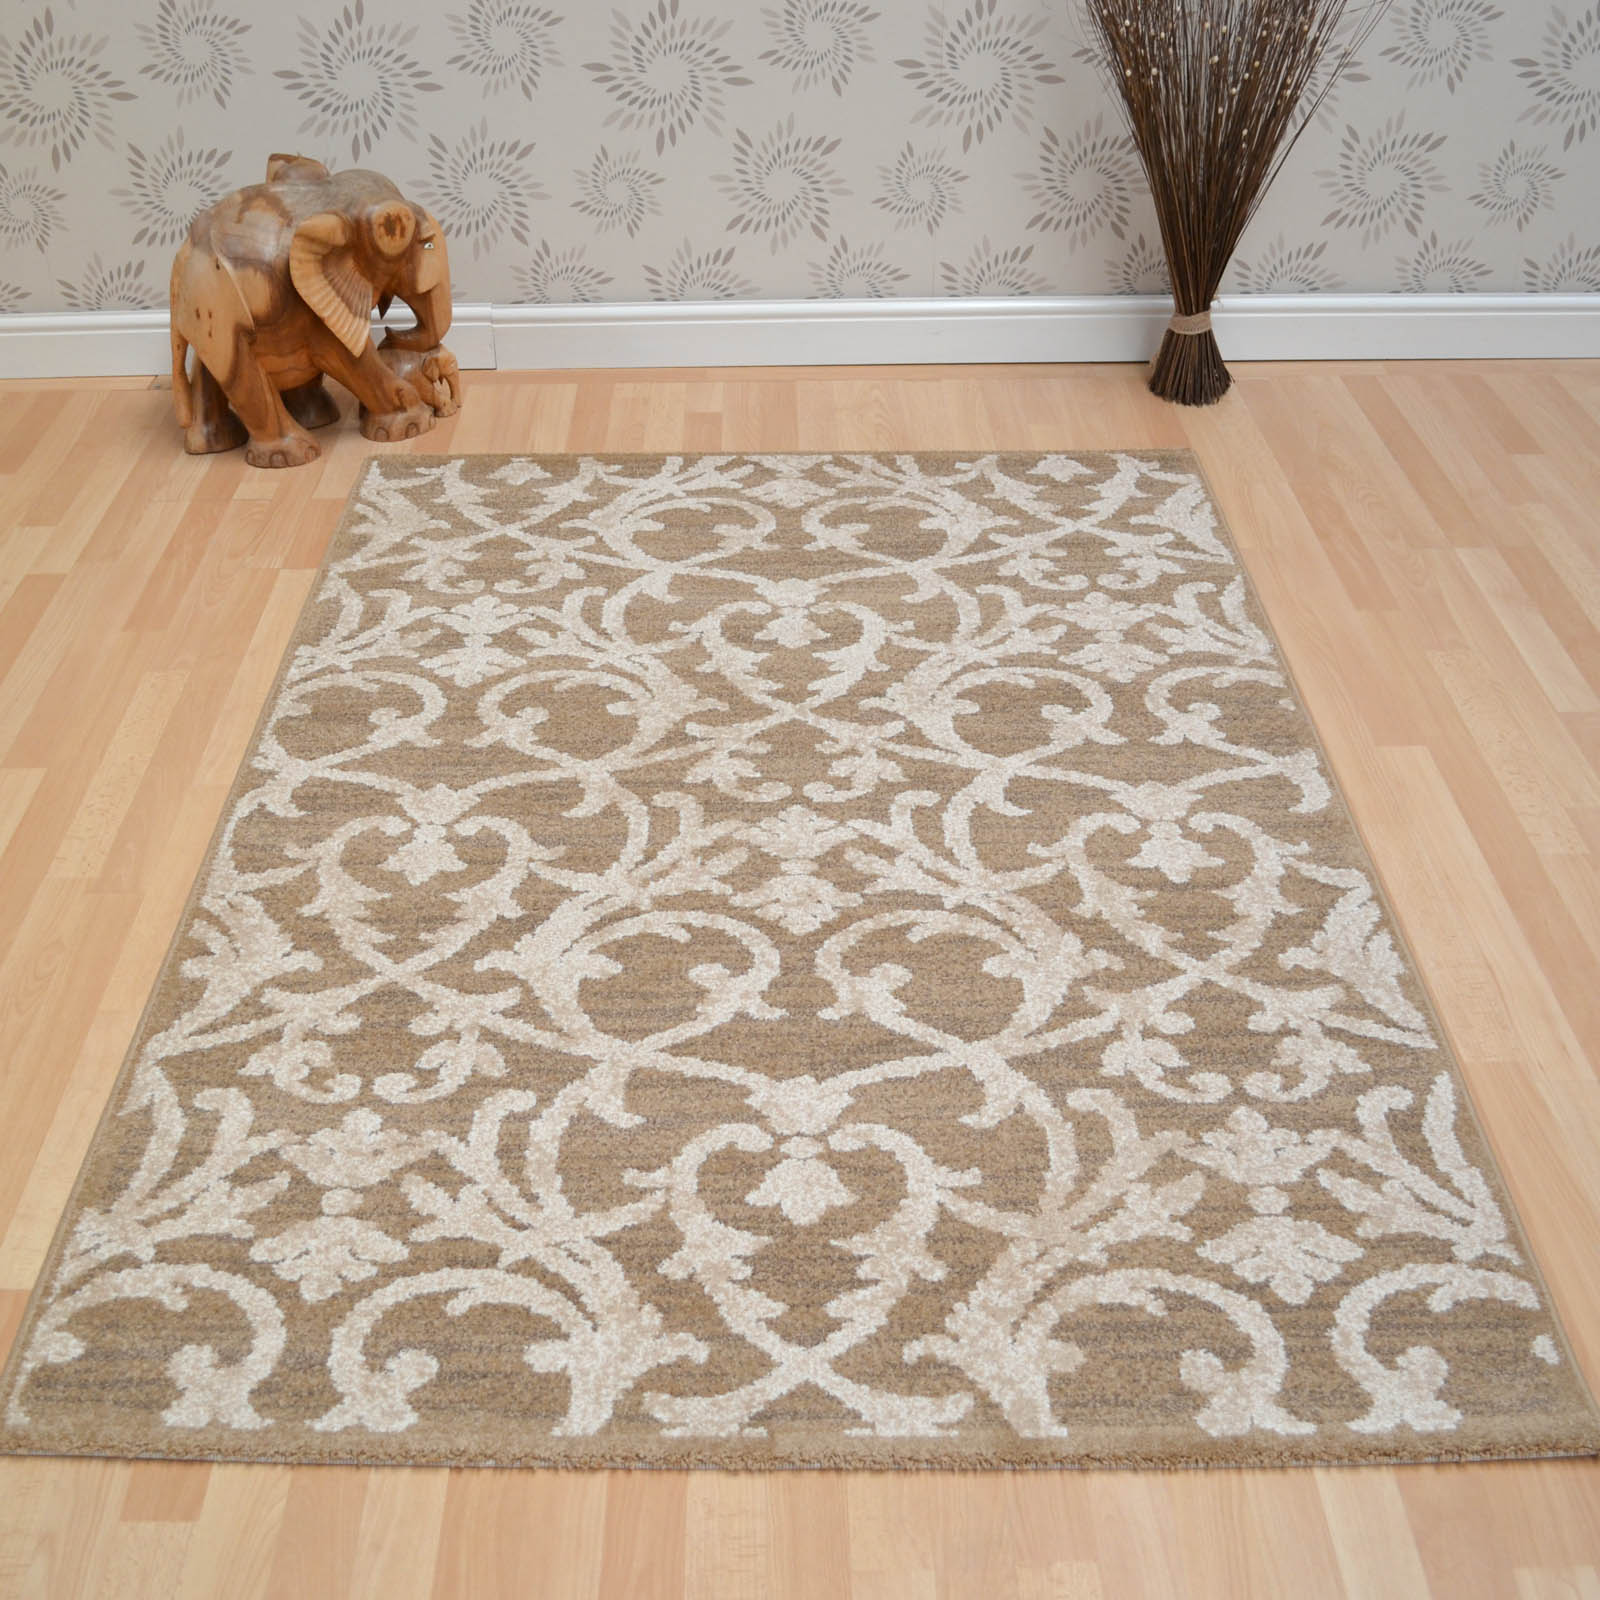 Tivoli Rugs 5891 241 Brown Beige